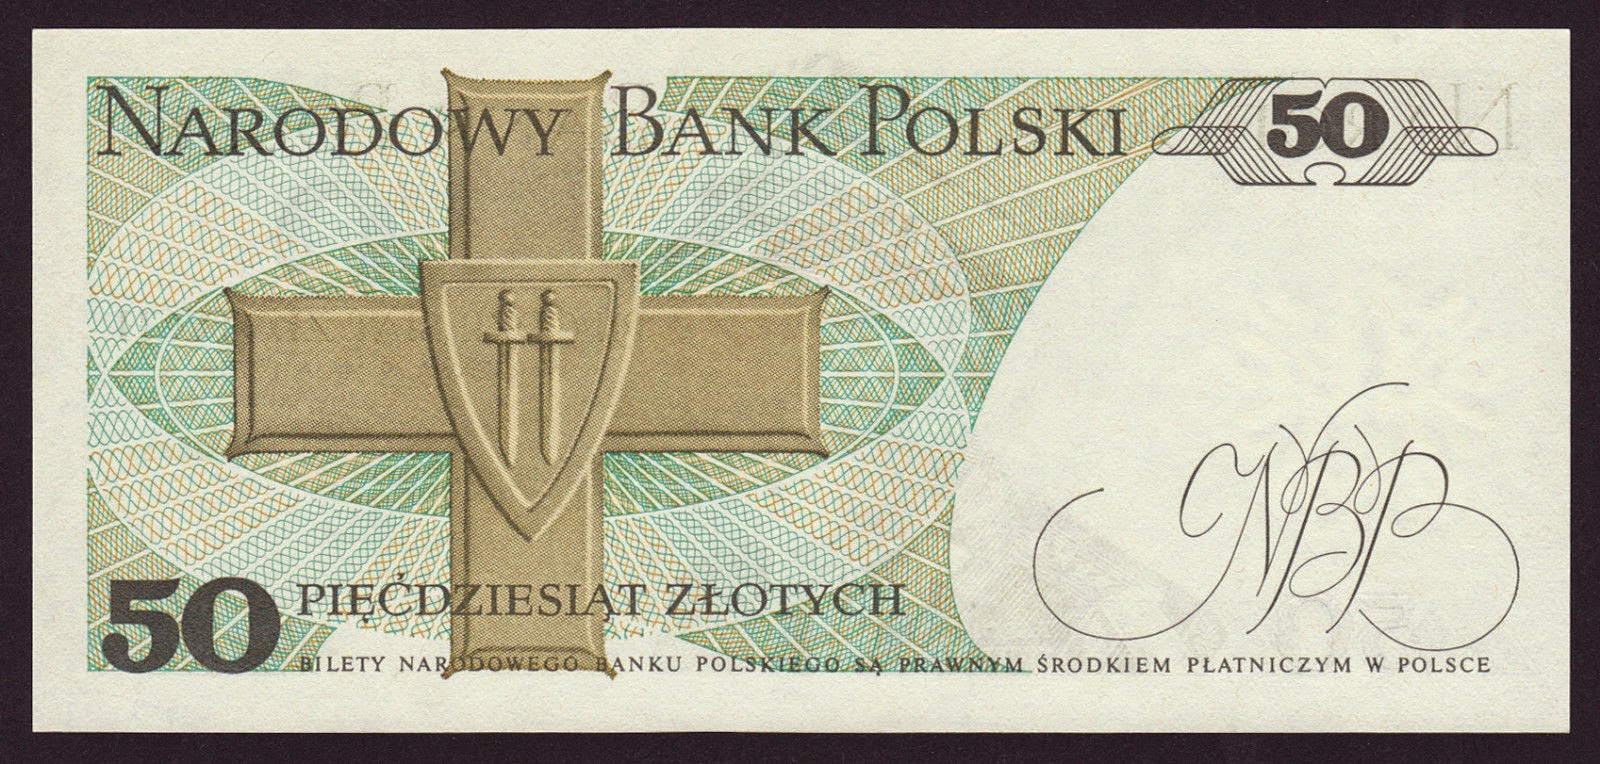 Poland Banknotes 50 Zloty banknote 1975 Order of the Cross of Grunwald